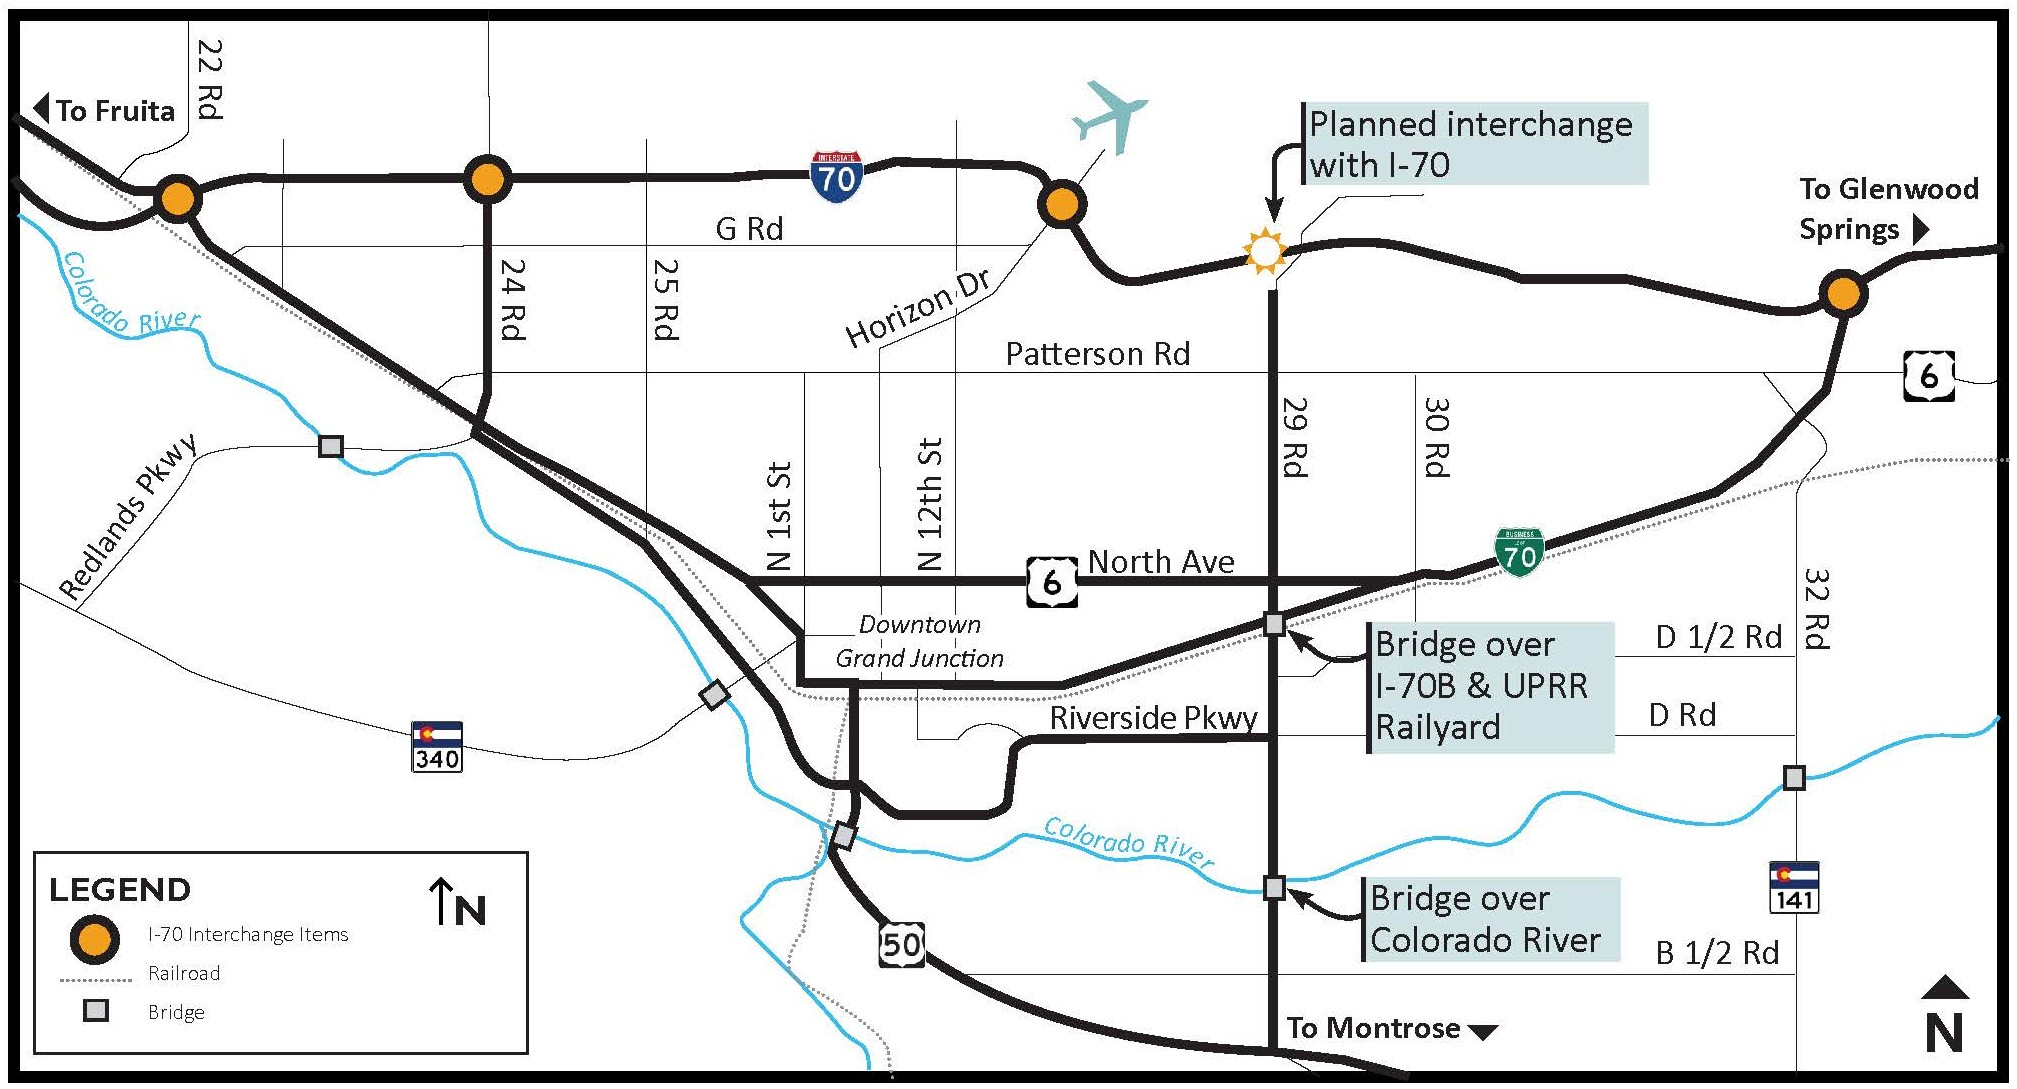 29 Road Interchange at 1-70 Planning Map